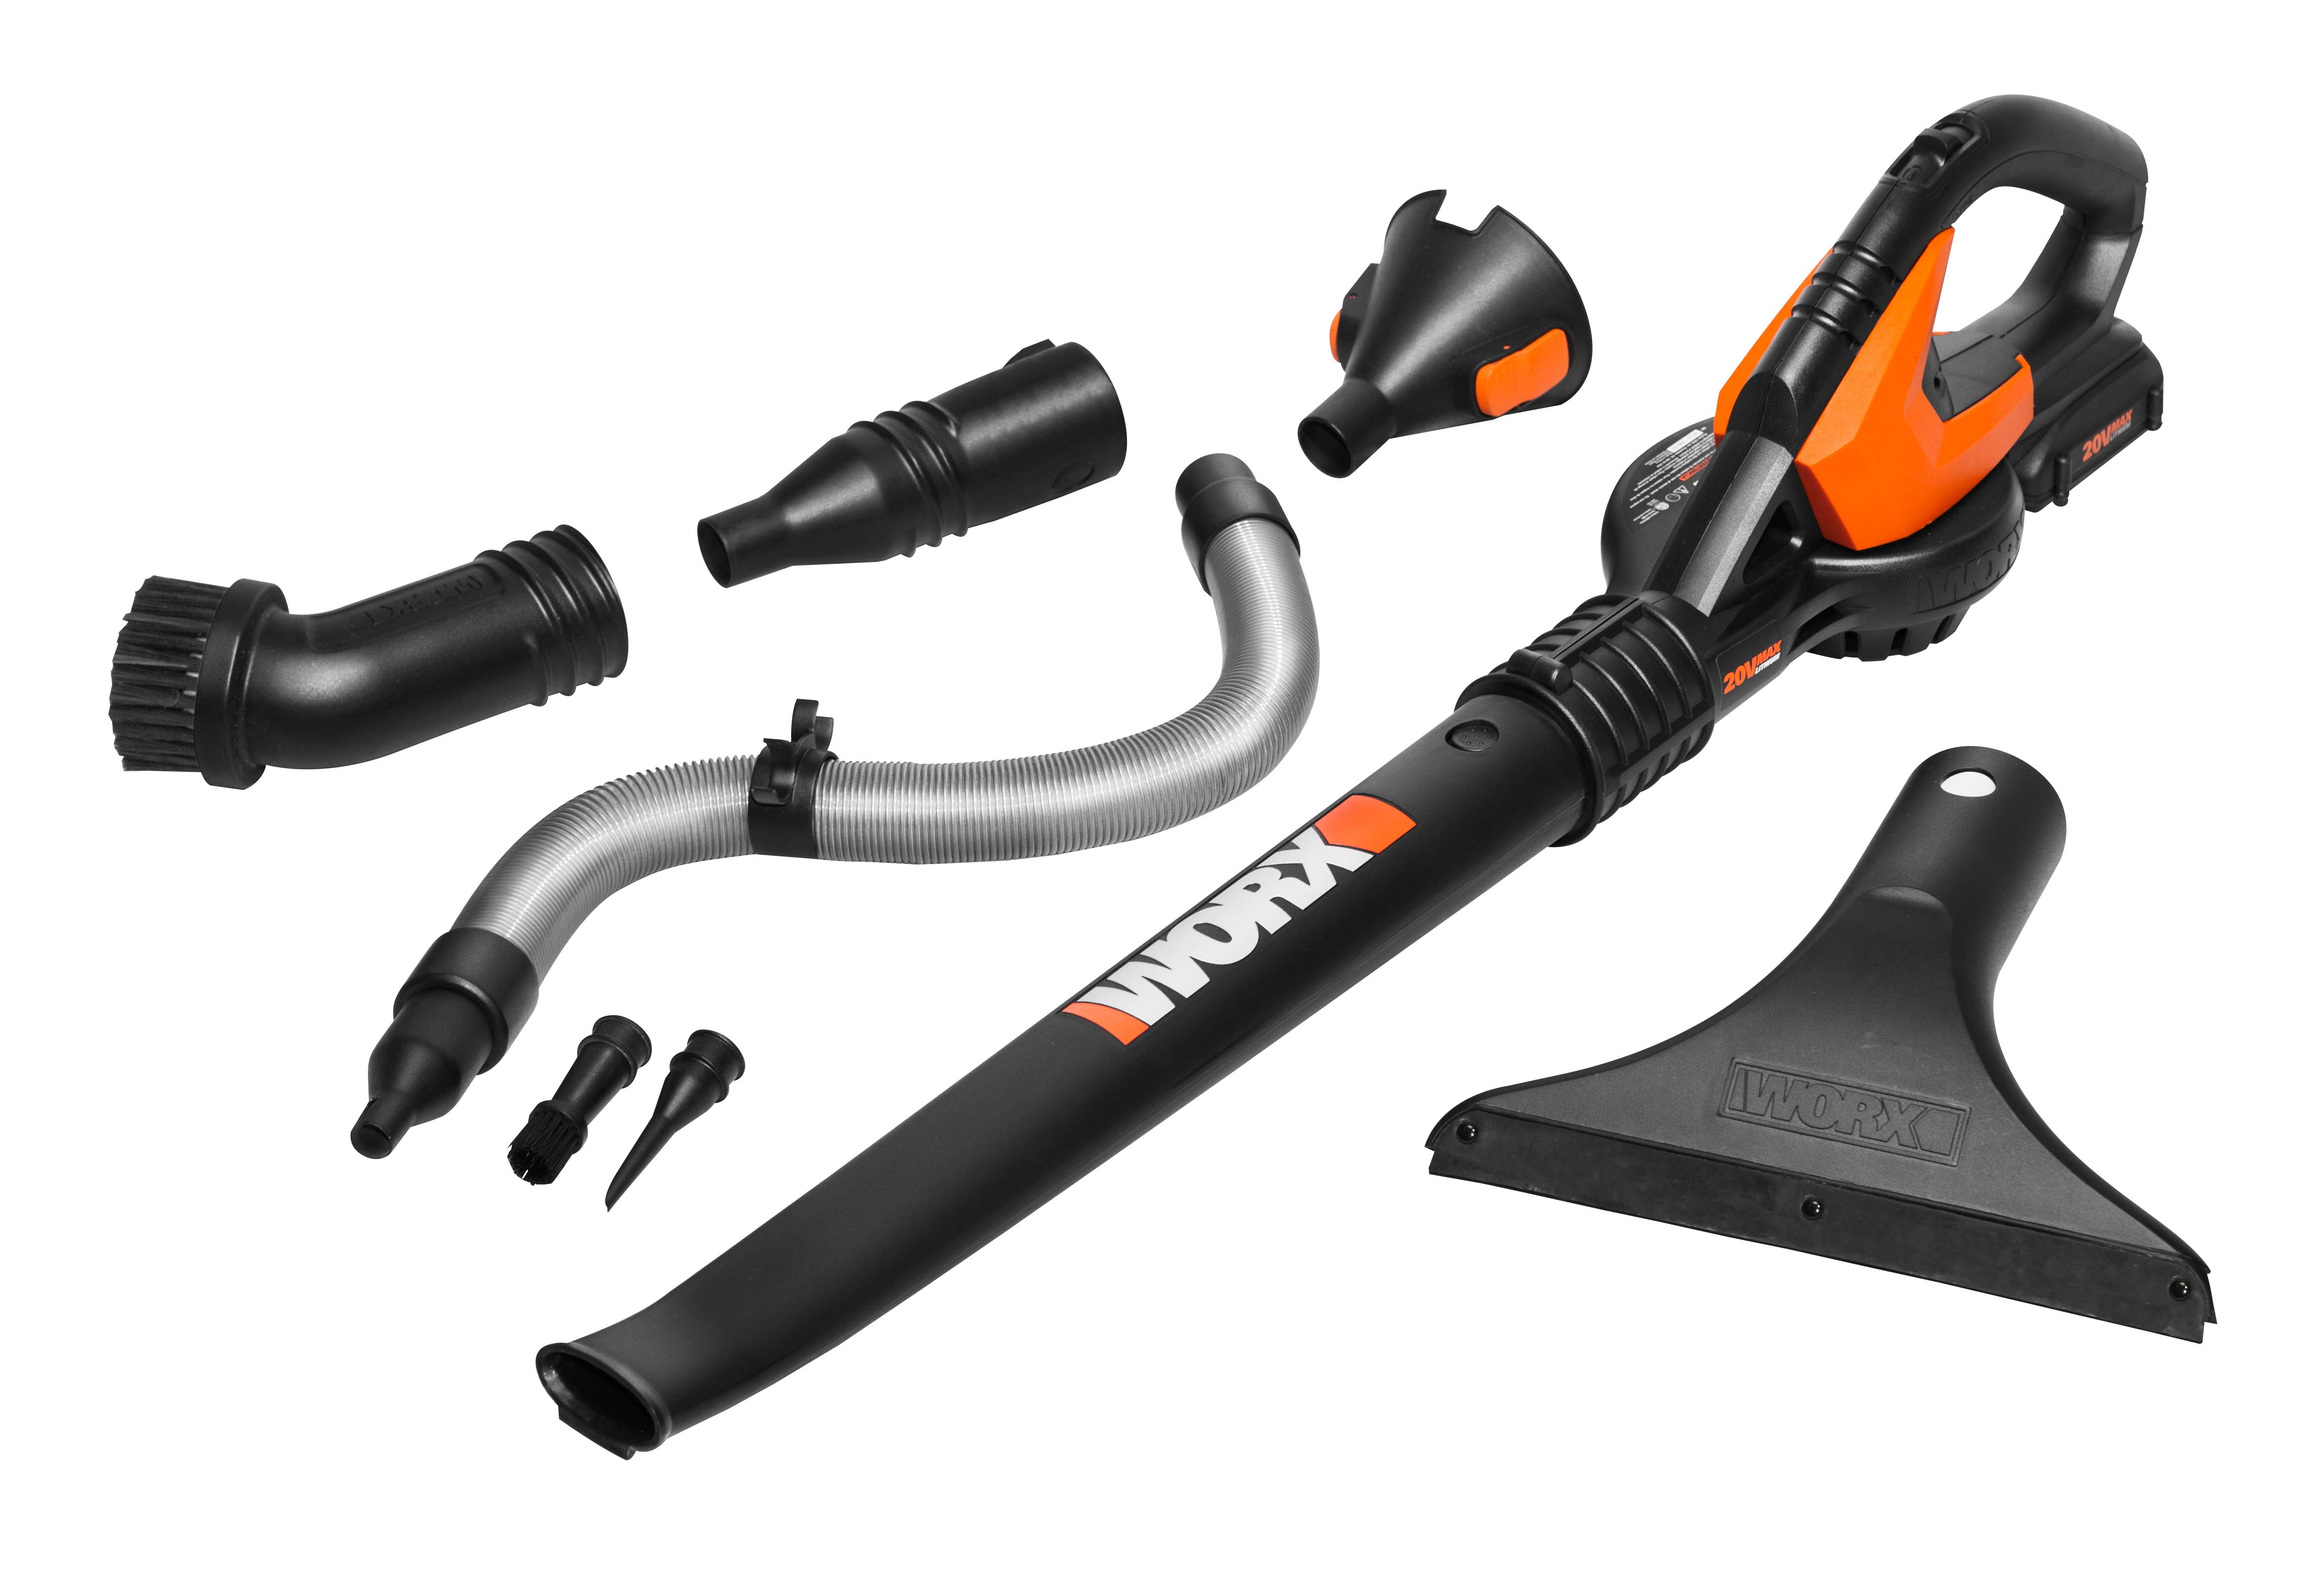 New Worx Air Blower Sweeper Attachments Help Knock Out